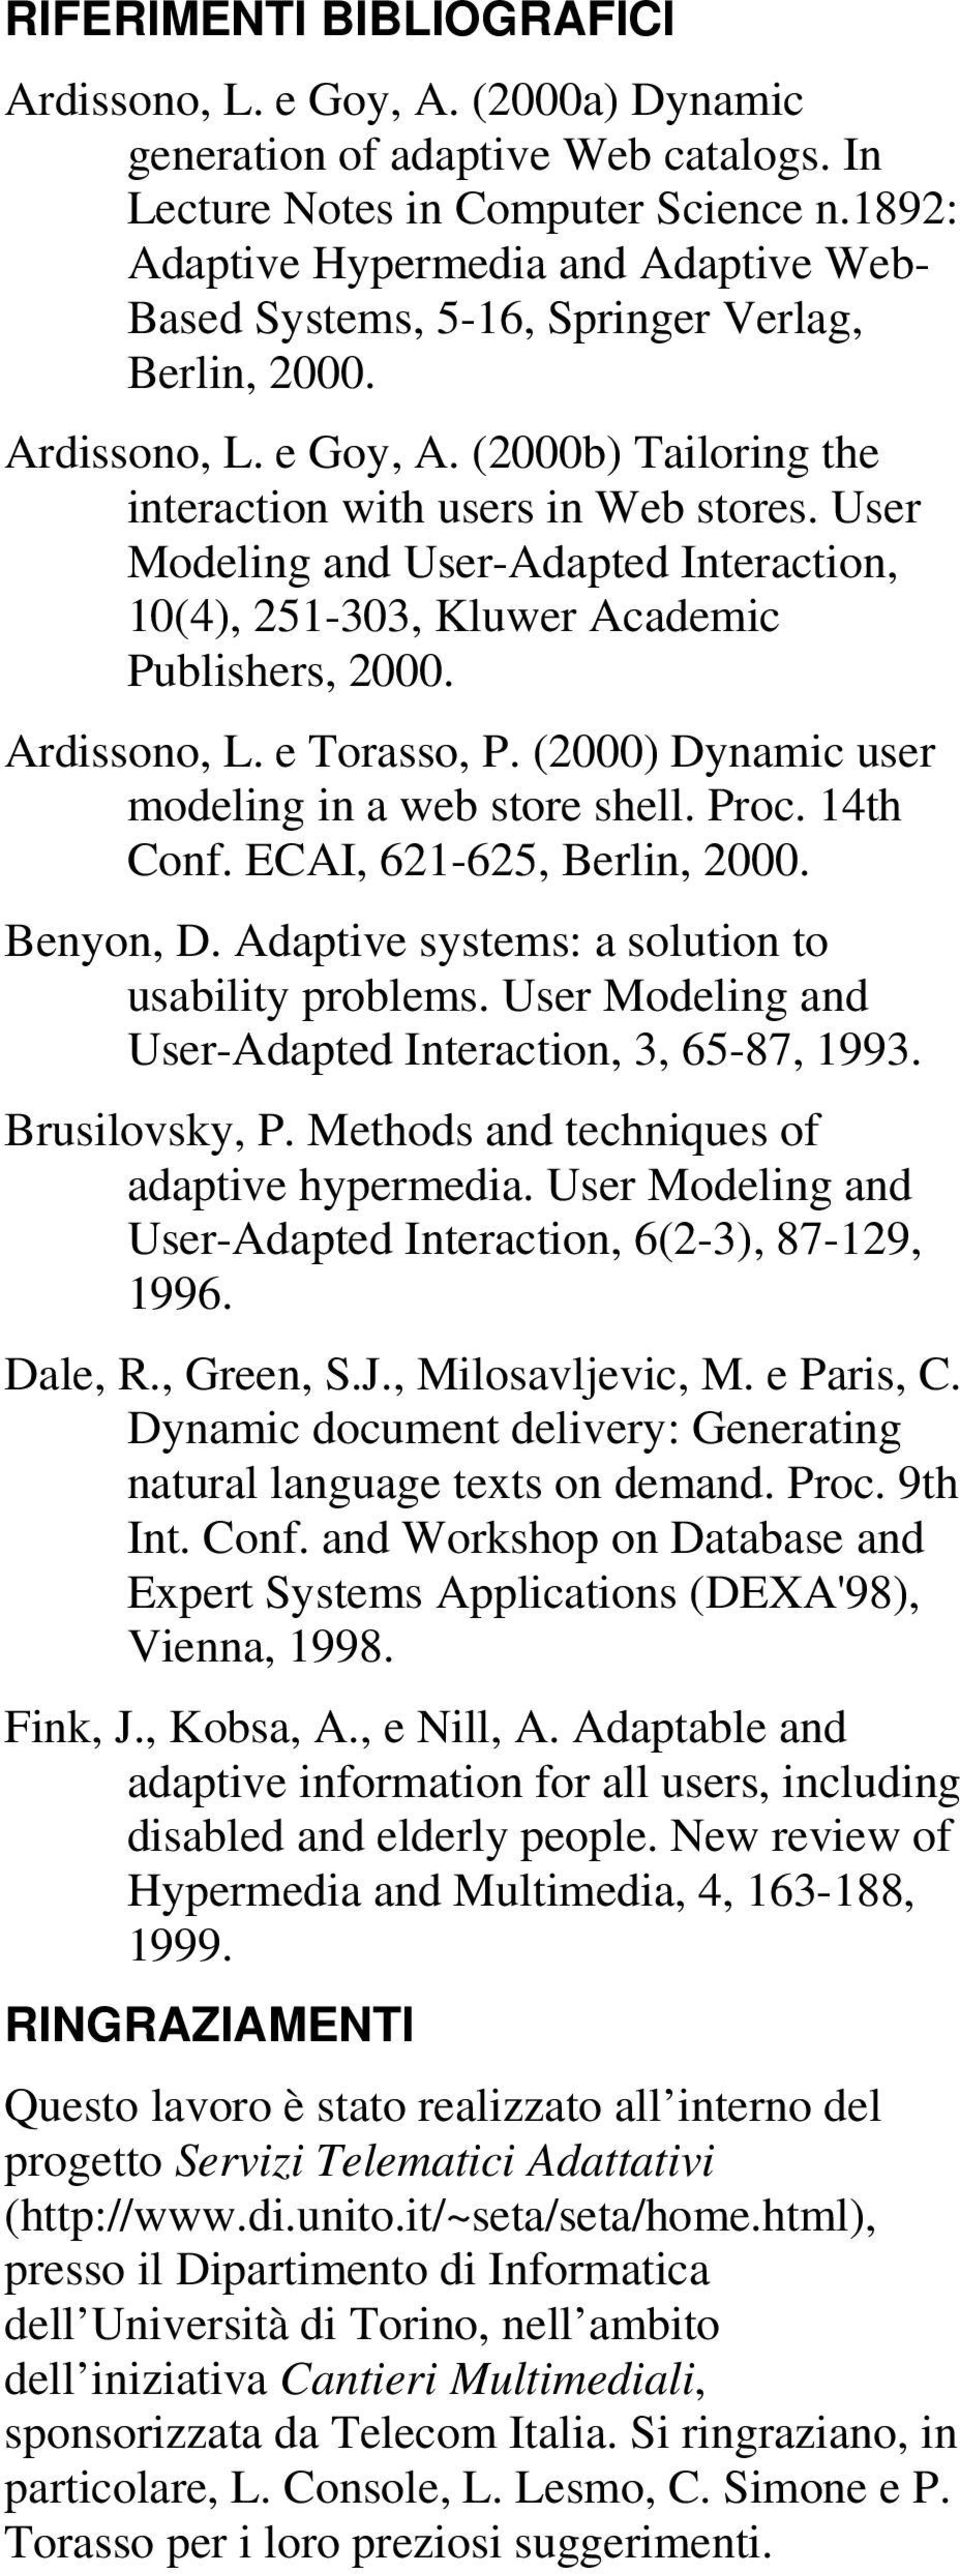 User Modeling and User-Adapted Interaction, 10(4), 251-303, Kluwer Academic Publishers, 2000. Ardissono, L. e Torasso, P. (2000) Dynamic user modeling in a web store shell. Proc. 14th Conf.